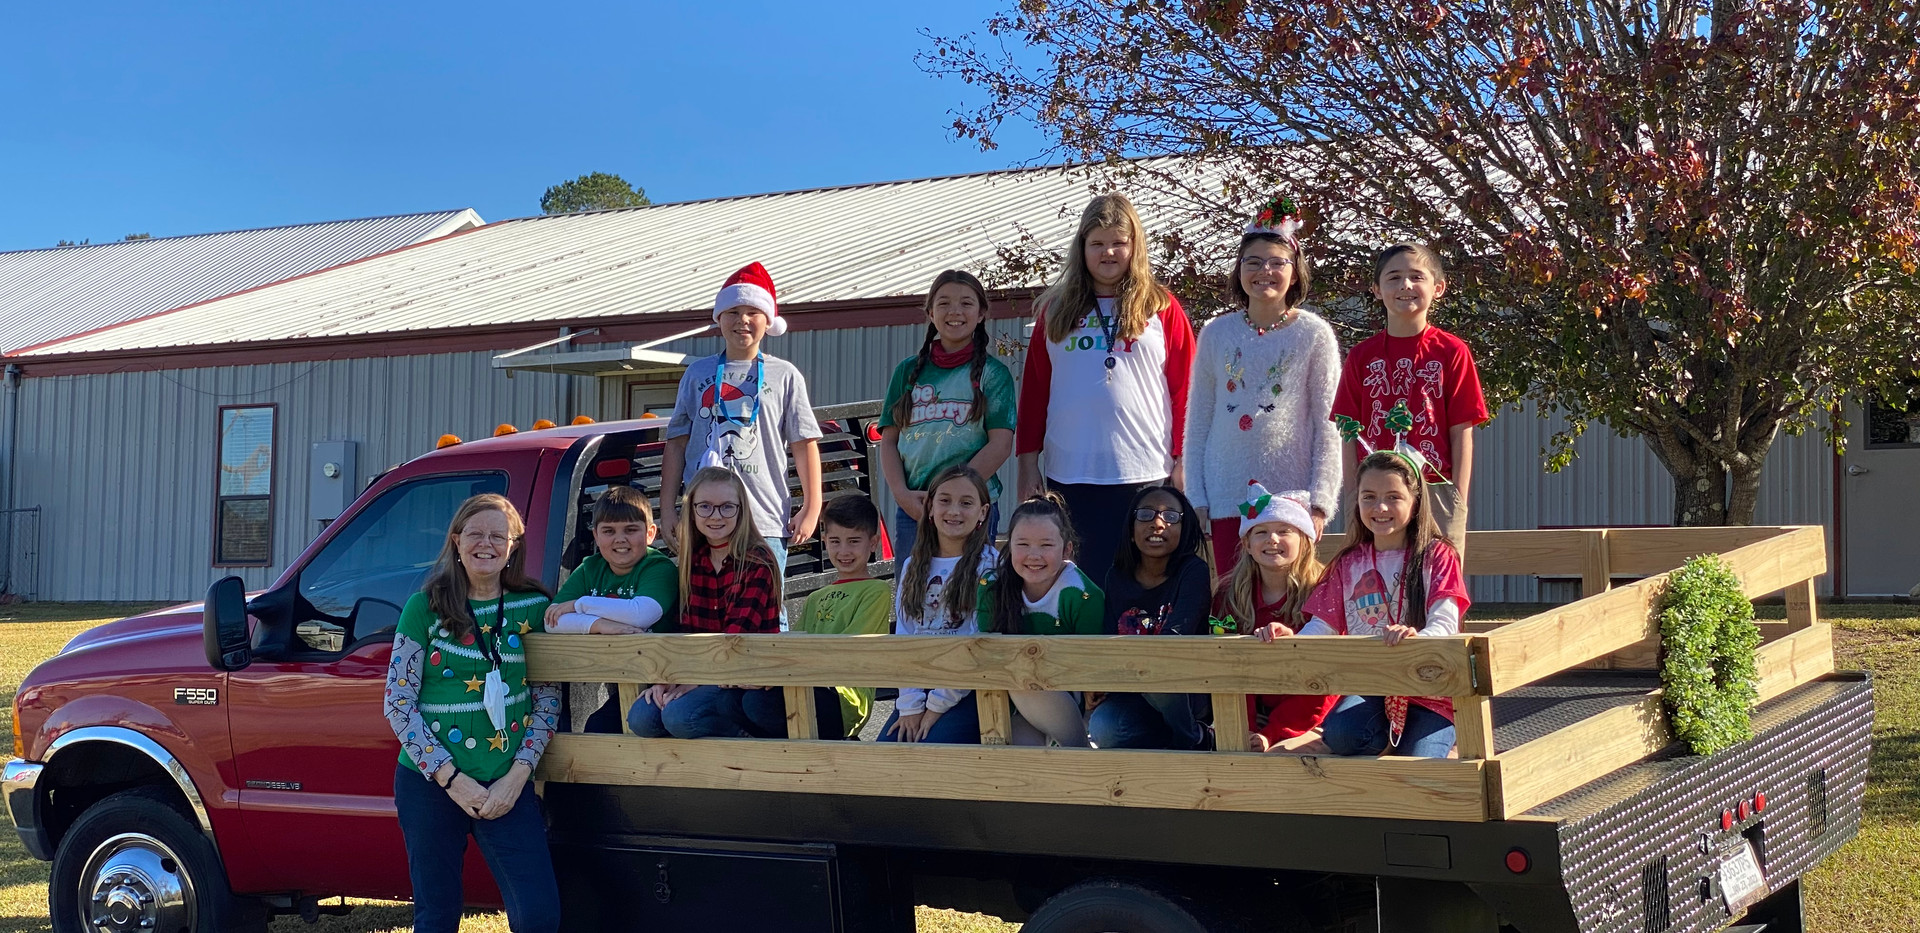 Ms. Deyoung's class at Christmastime.